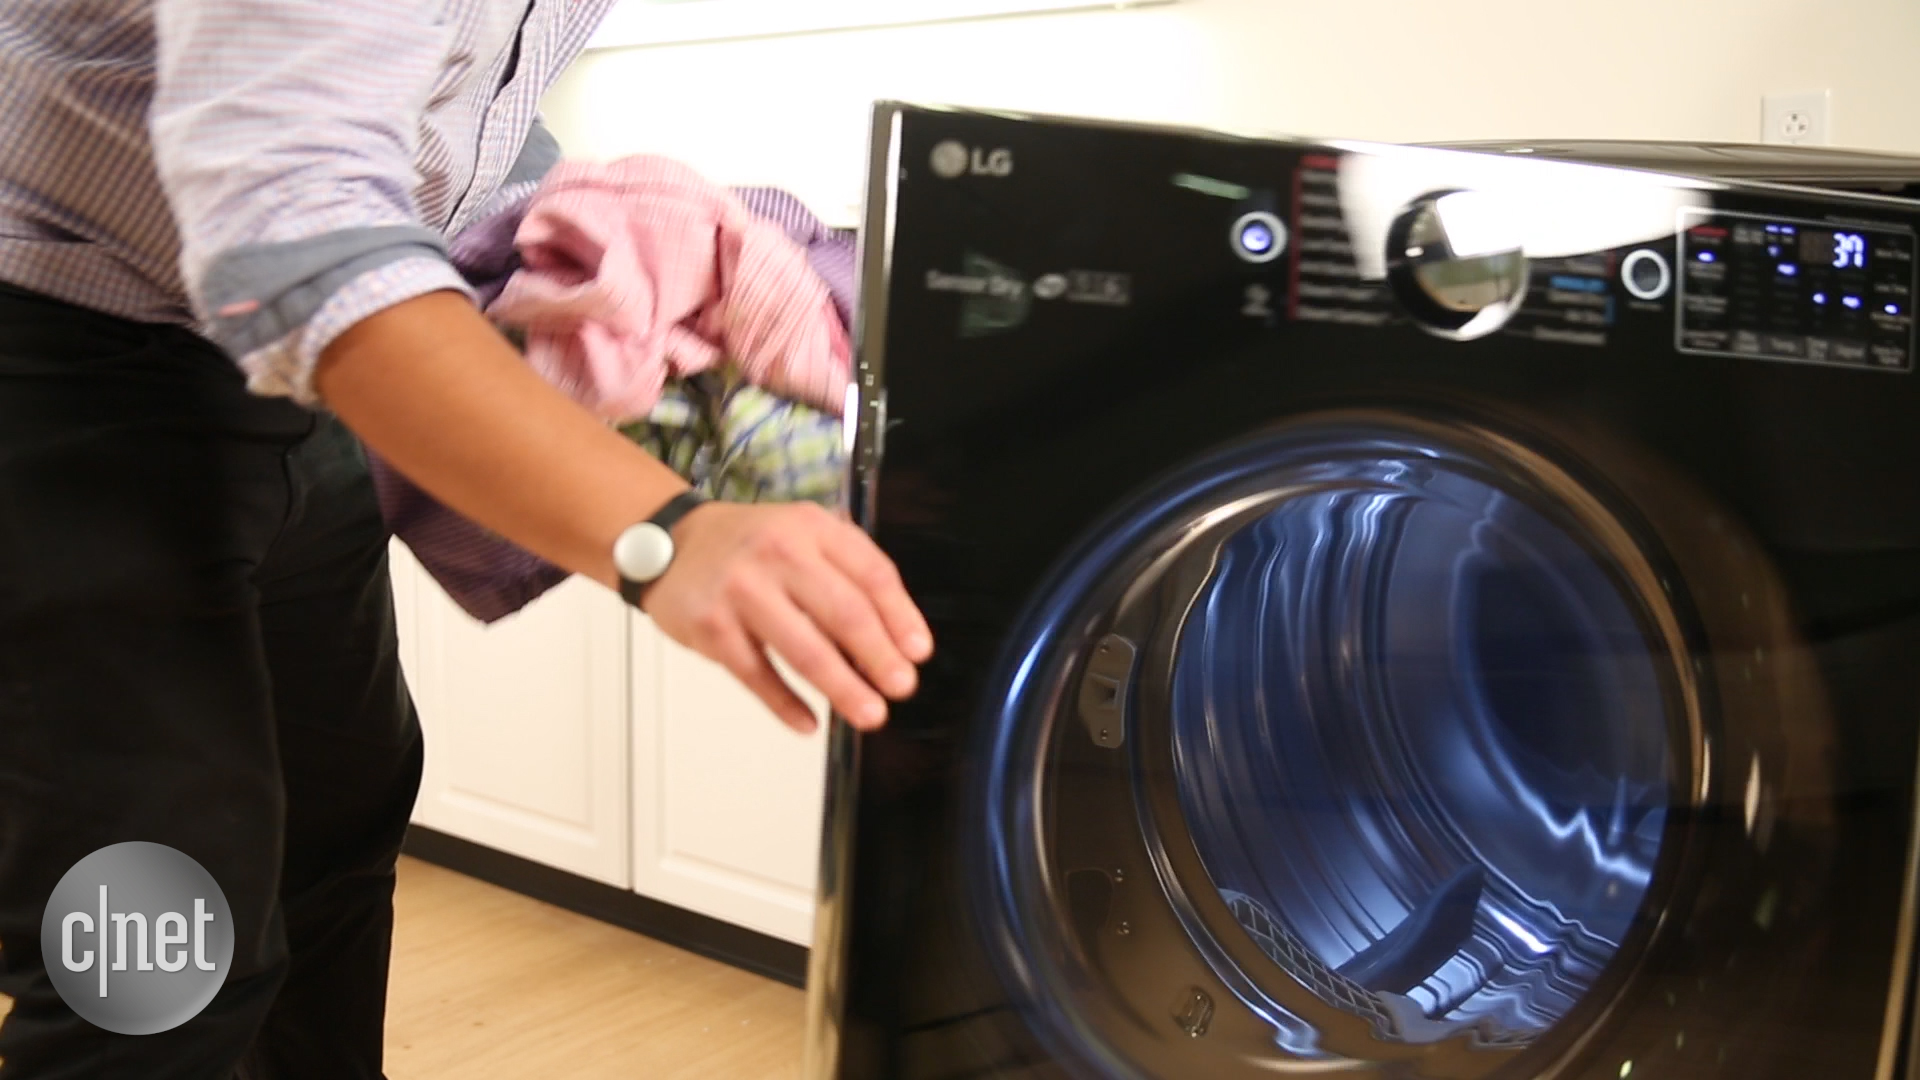 Video: Roomy LG dryer has speed and style if you can pay for it